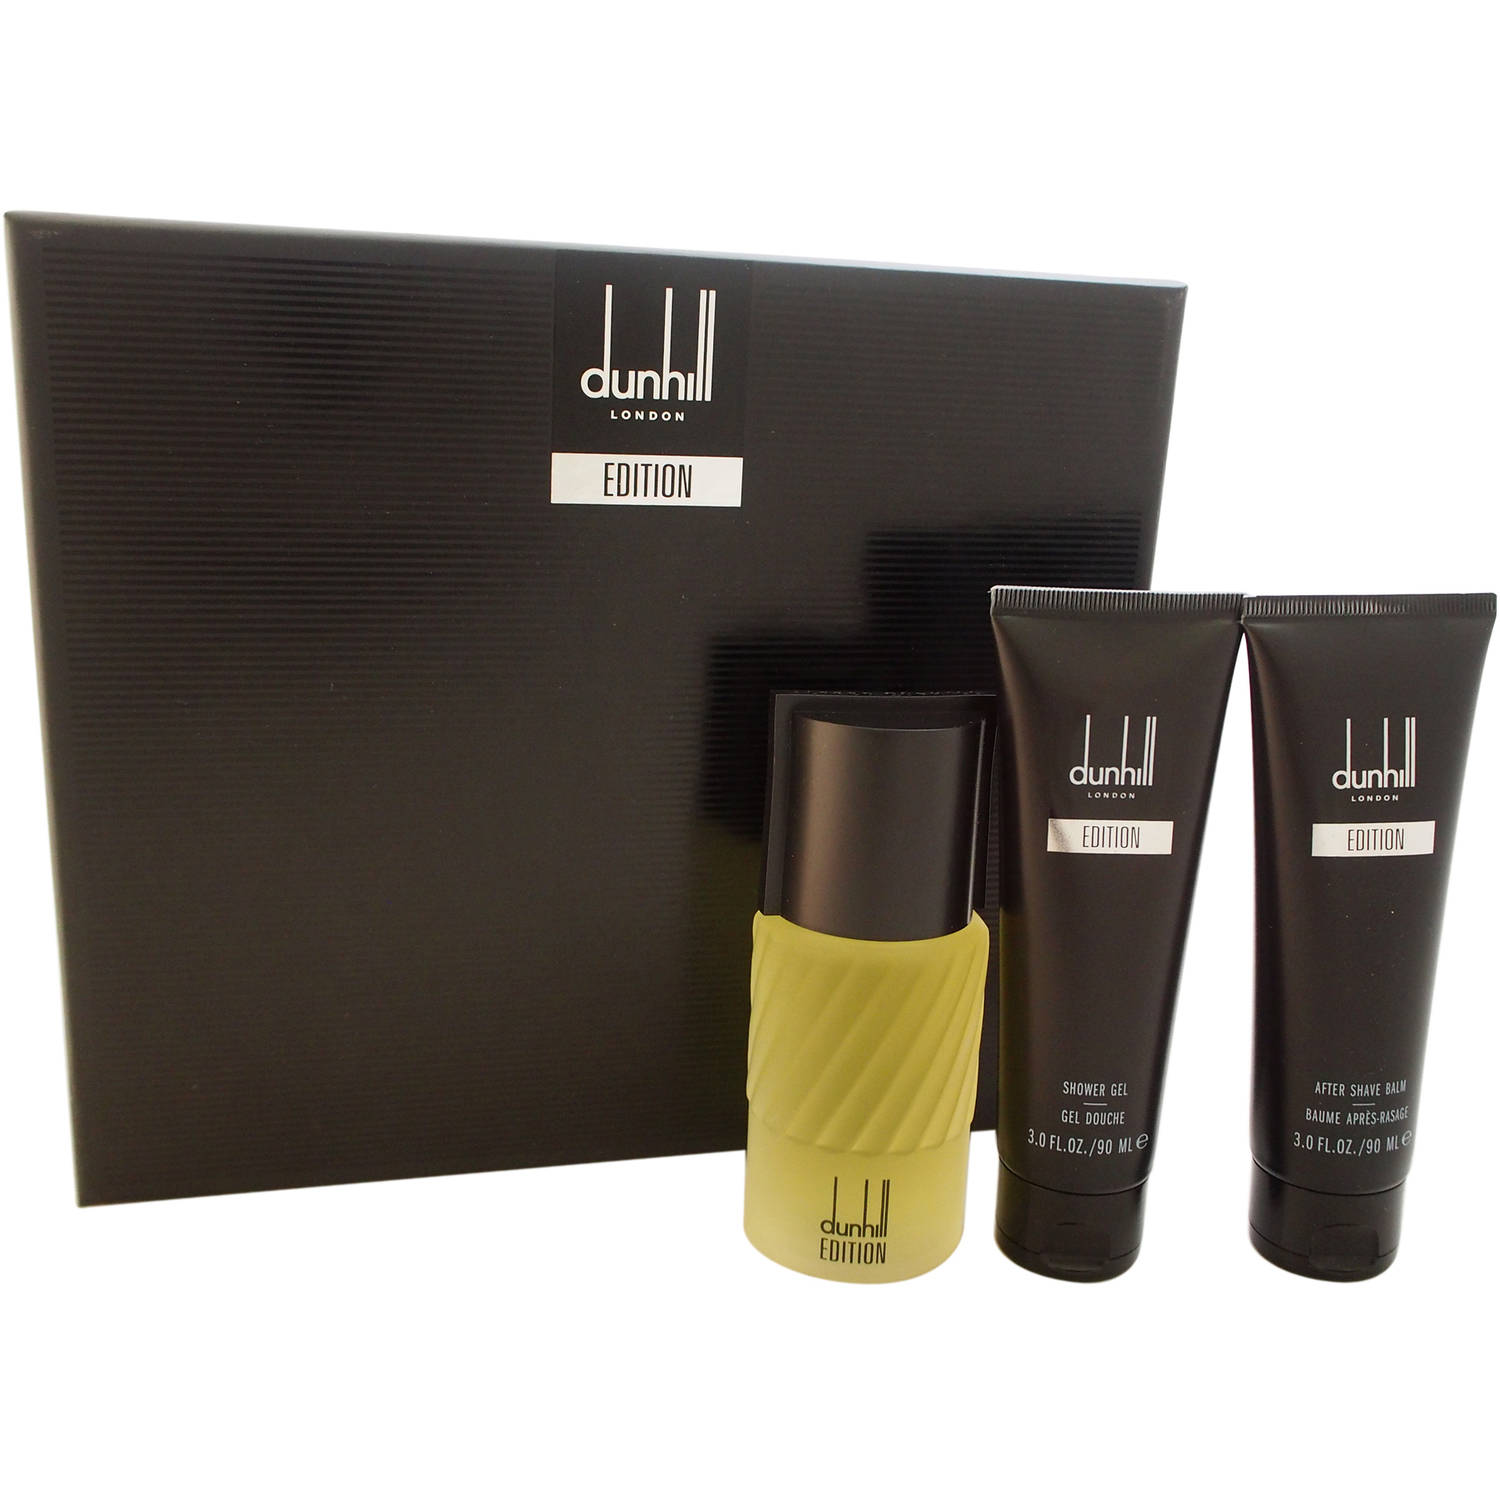 Alfred Dunhill Dunhill London Edition Gift Set for Men, 3 pc